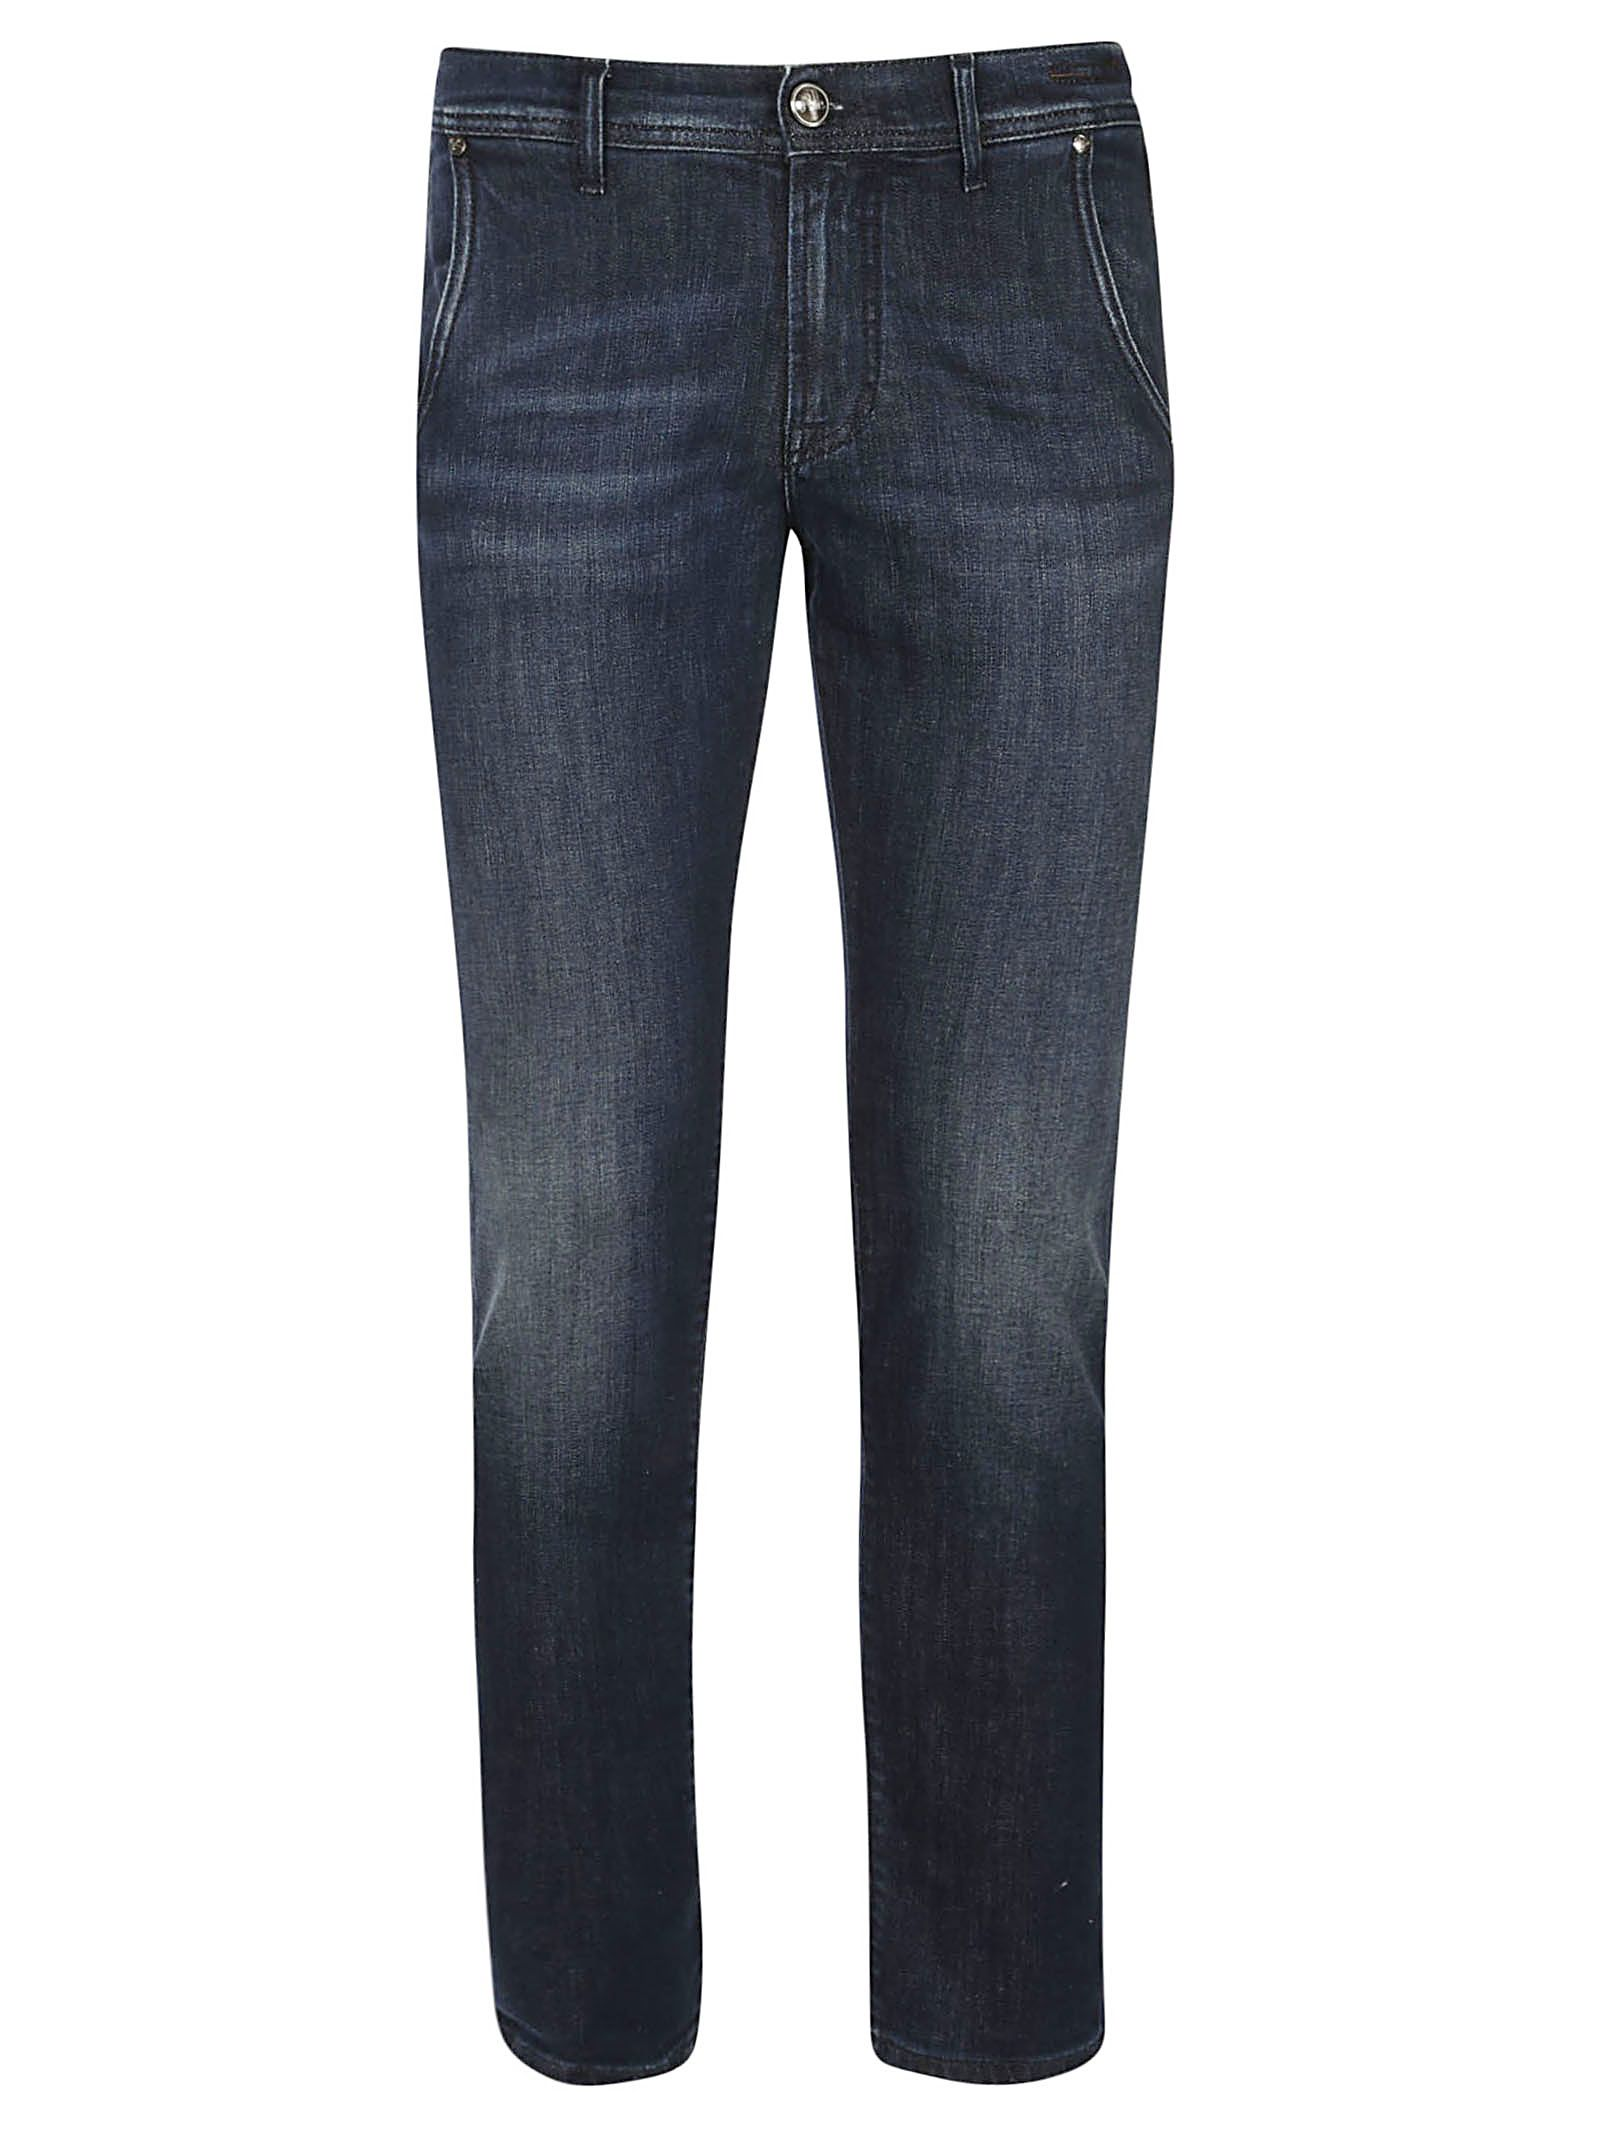 ROY ROGERS Classic Jeans in Blue